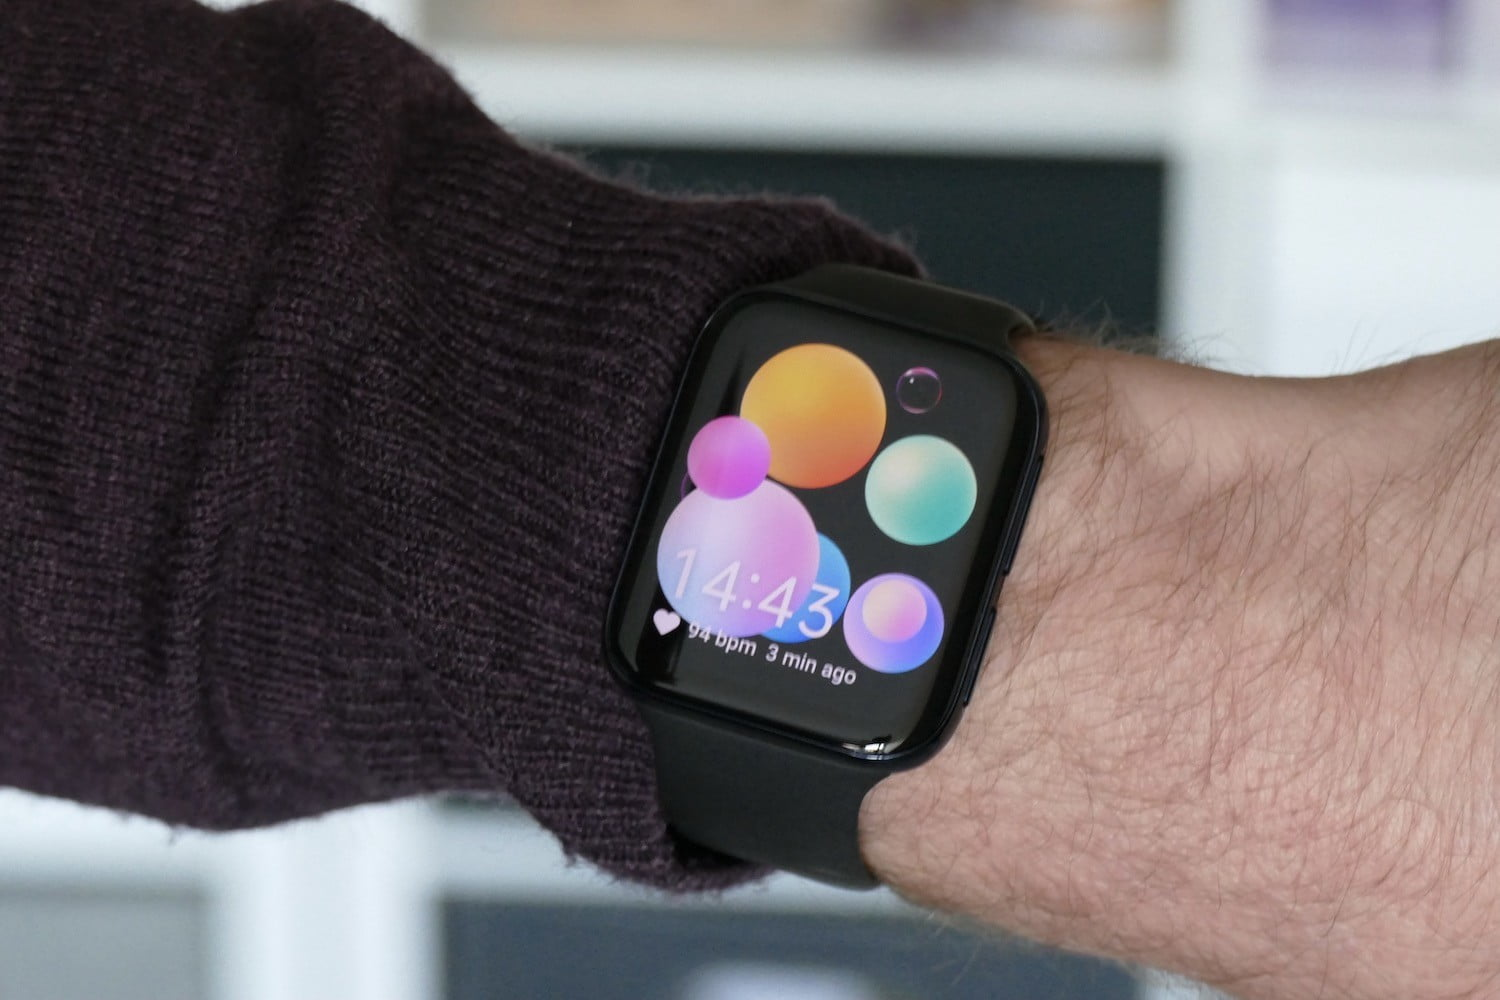 oppo watch 46mm lte hands on features price photos release date bubbles